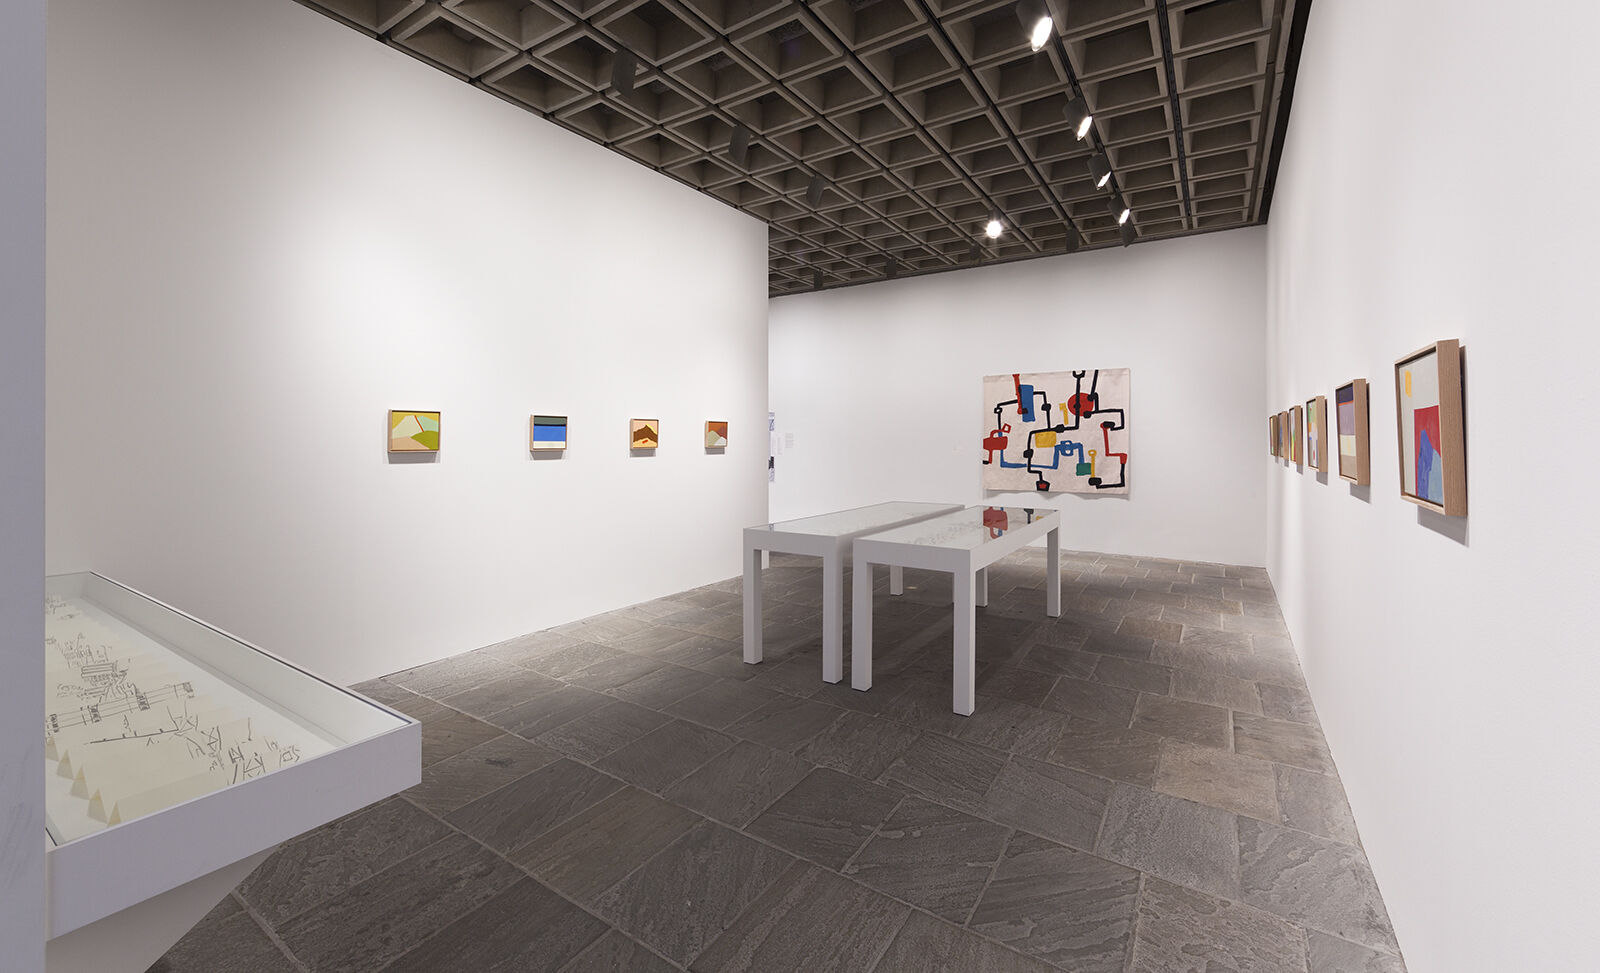 A gallery filled with works of art.